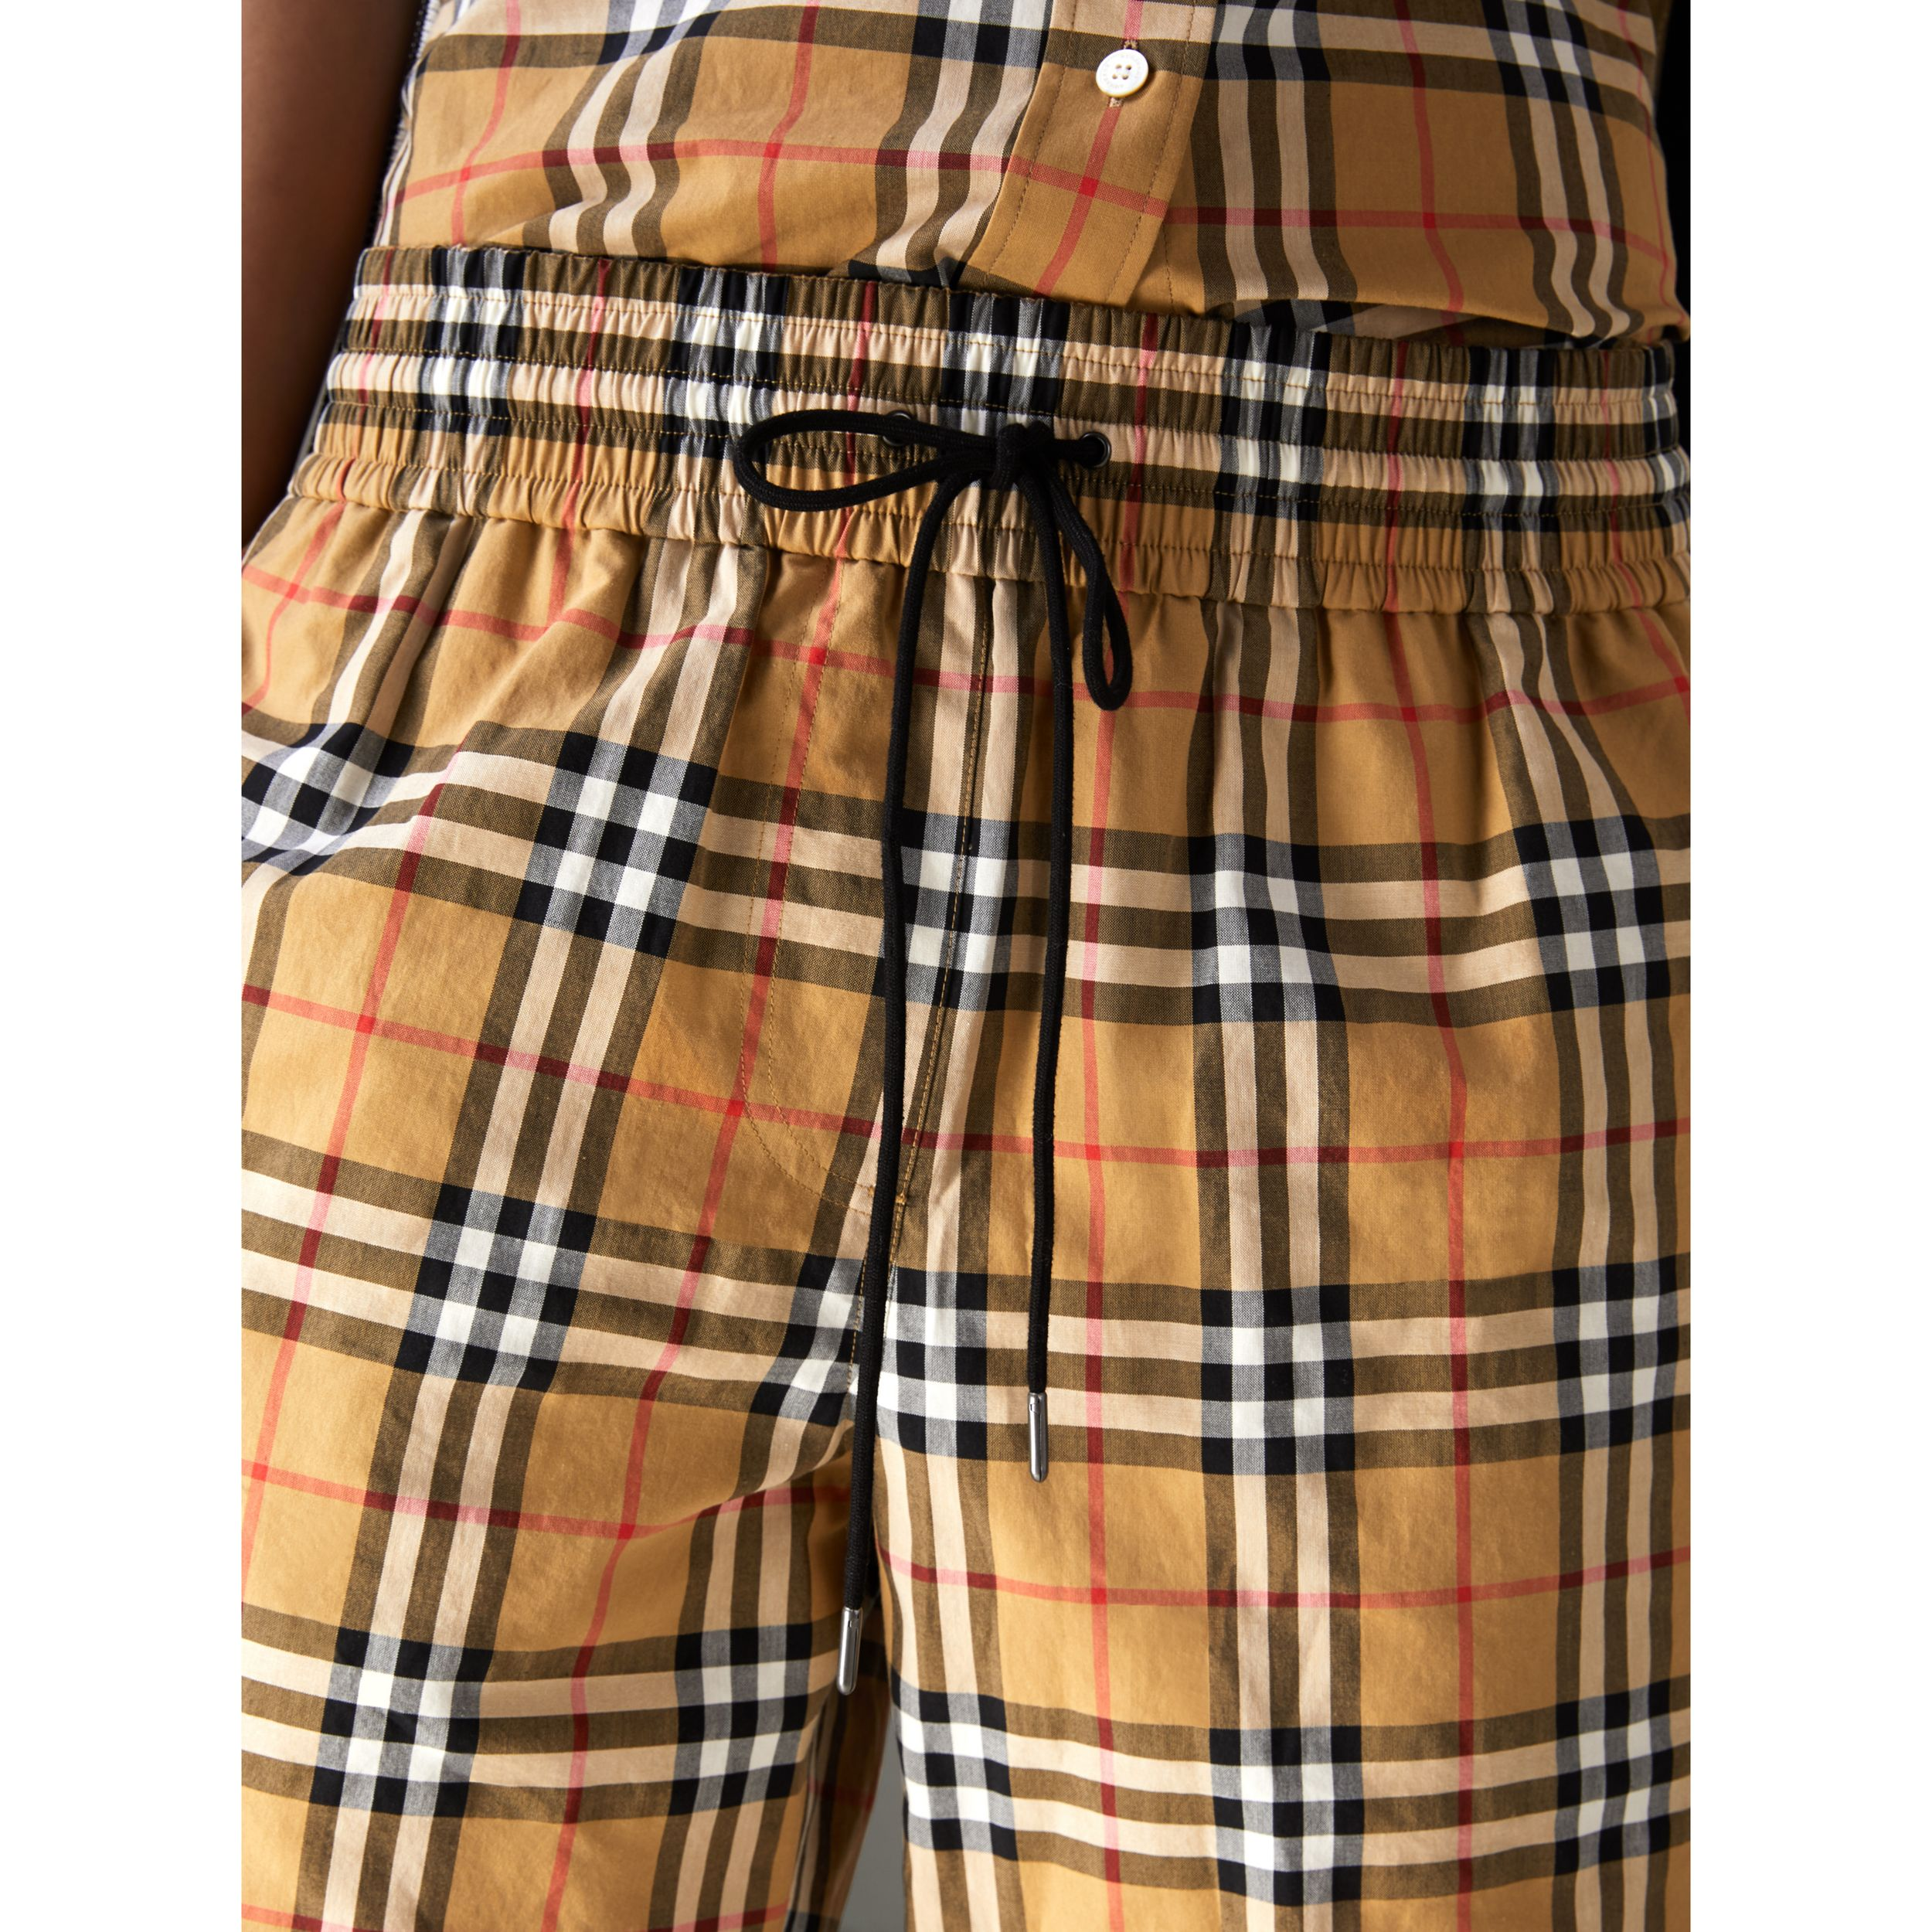 Vintage Check Drawstring Shorts in Antique Yellow - Women | Burberry Australia - 2